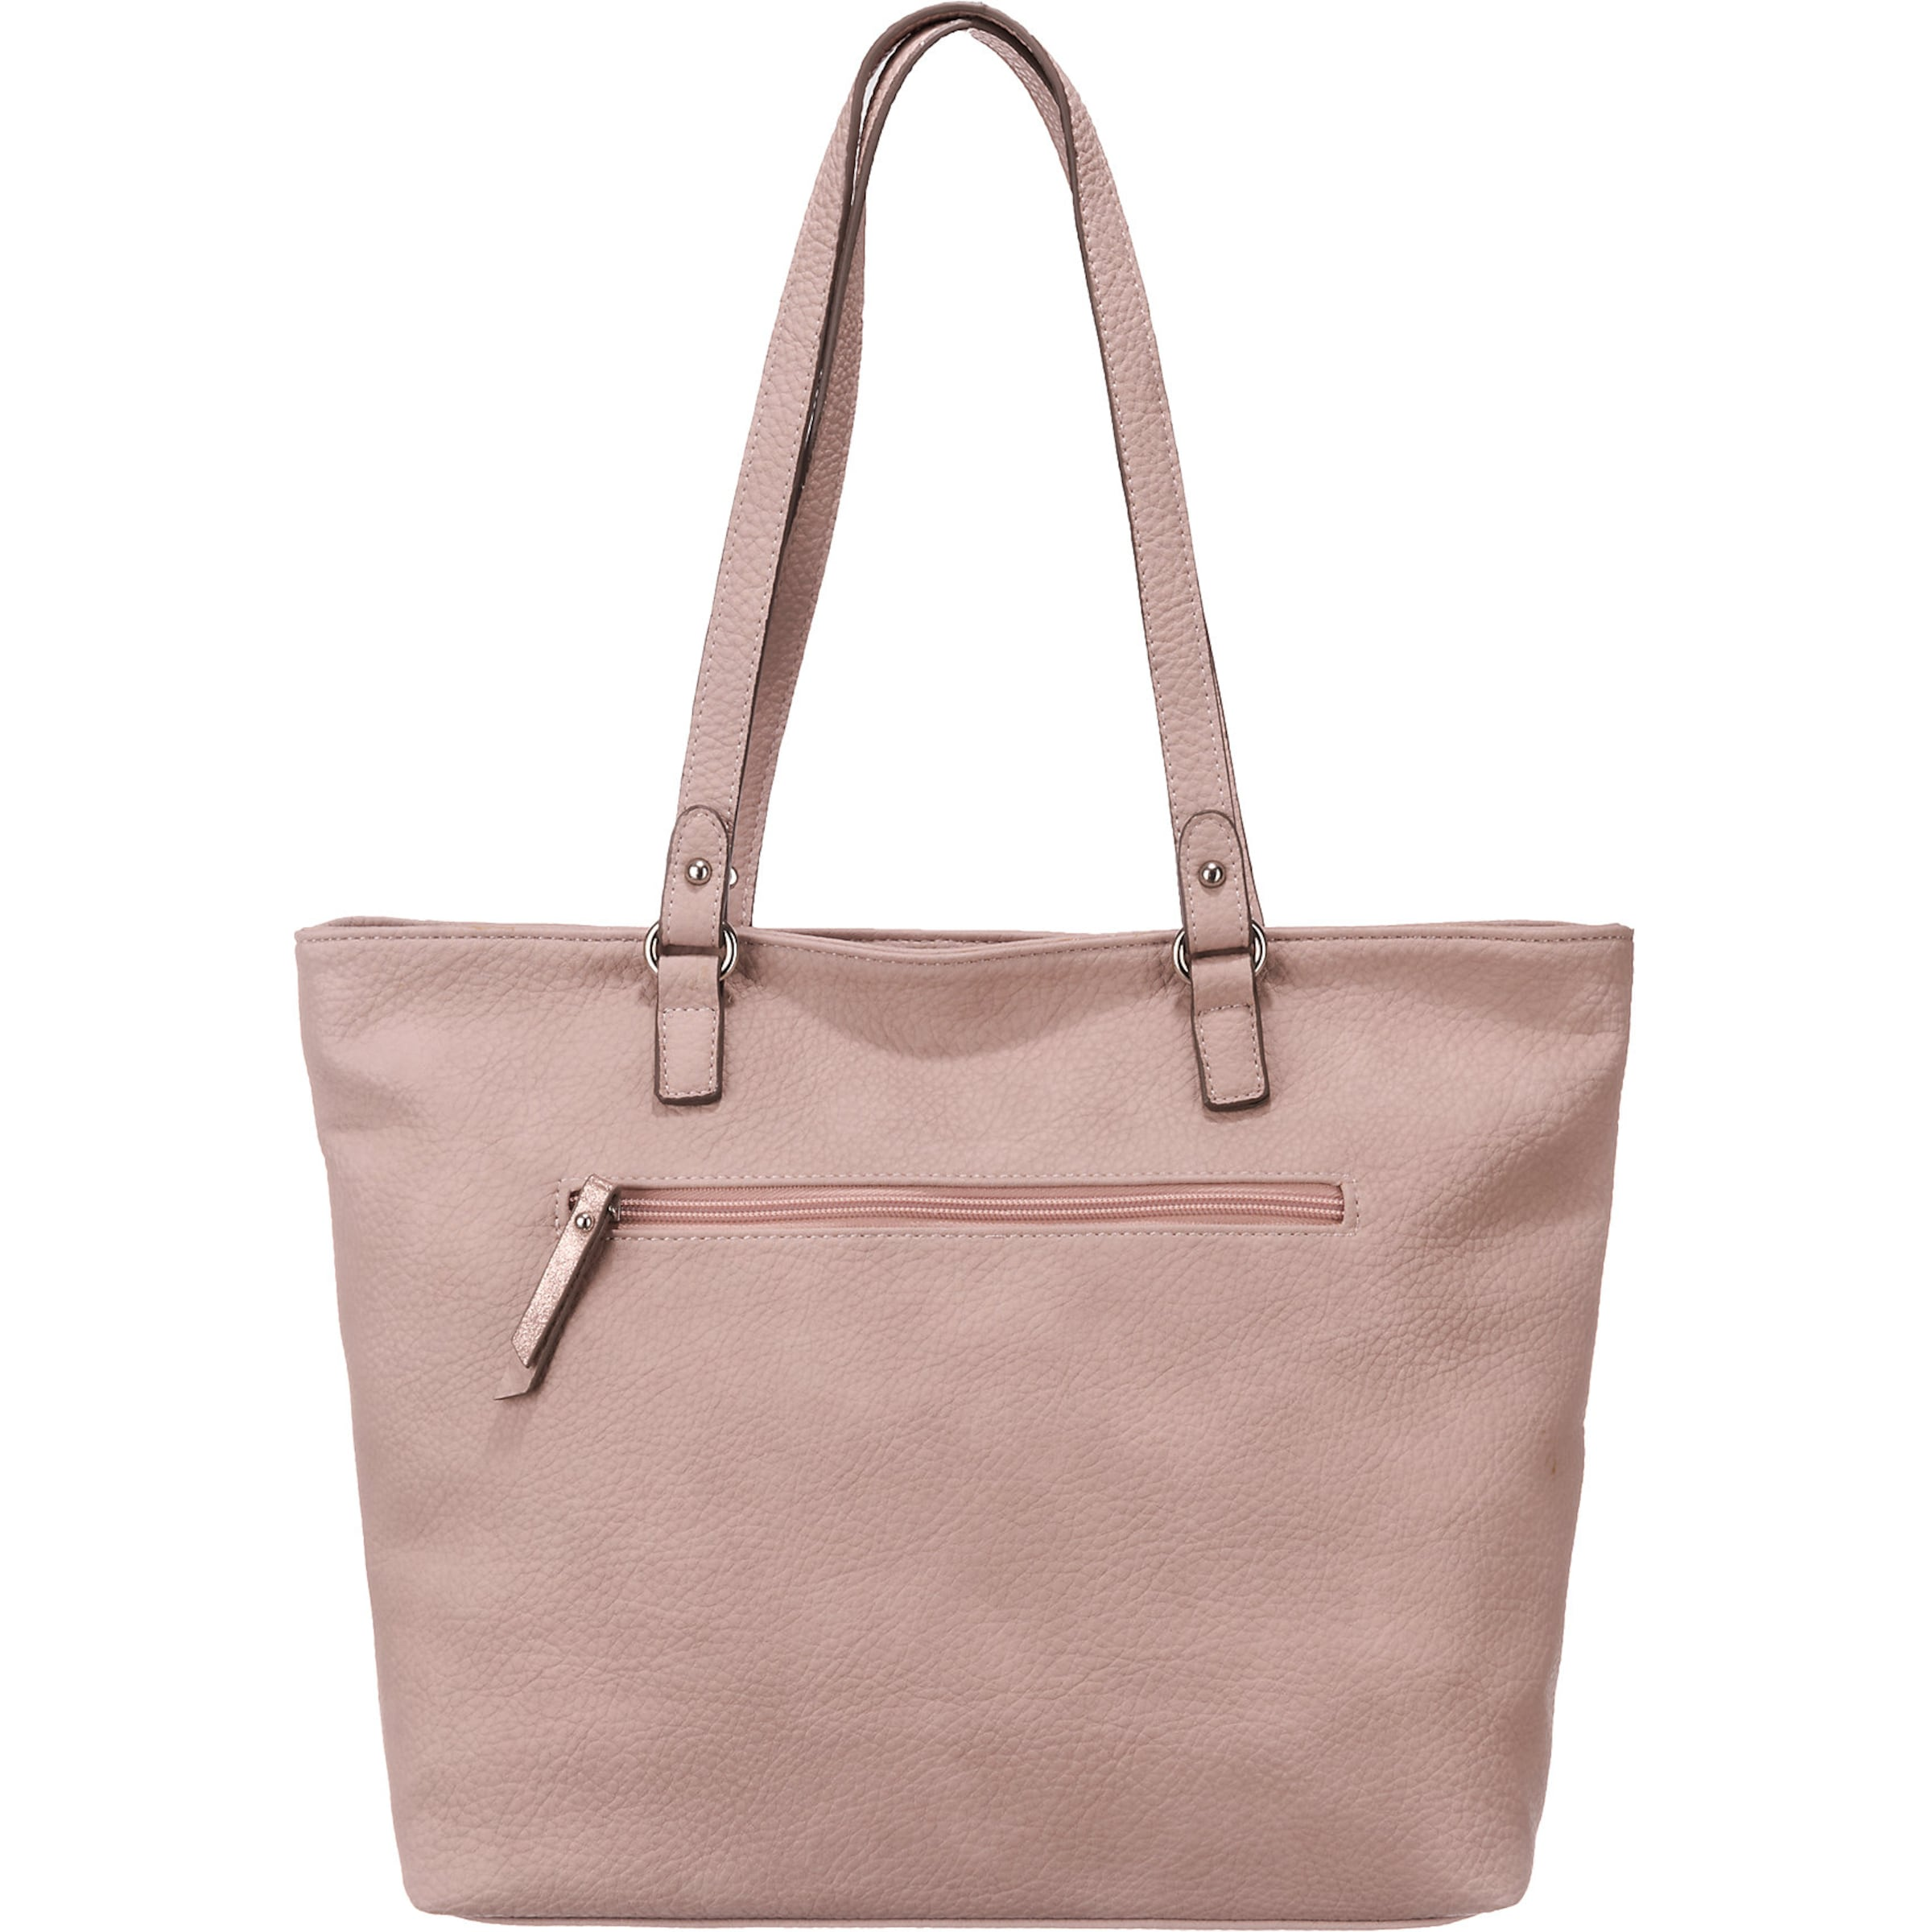 'Amalia' TAILOR TOM TAILOR TOM Shopper TOM TOM TAILOR Shopper 'Amalia' Shopper 'Amalia' qww0tZO